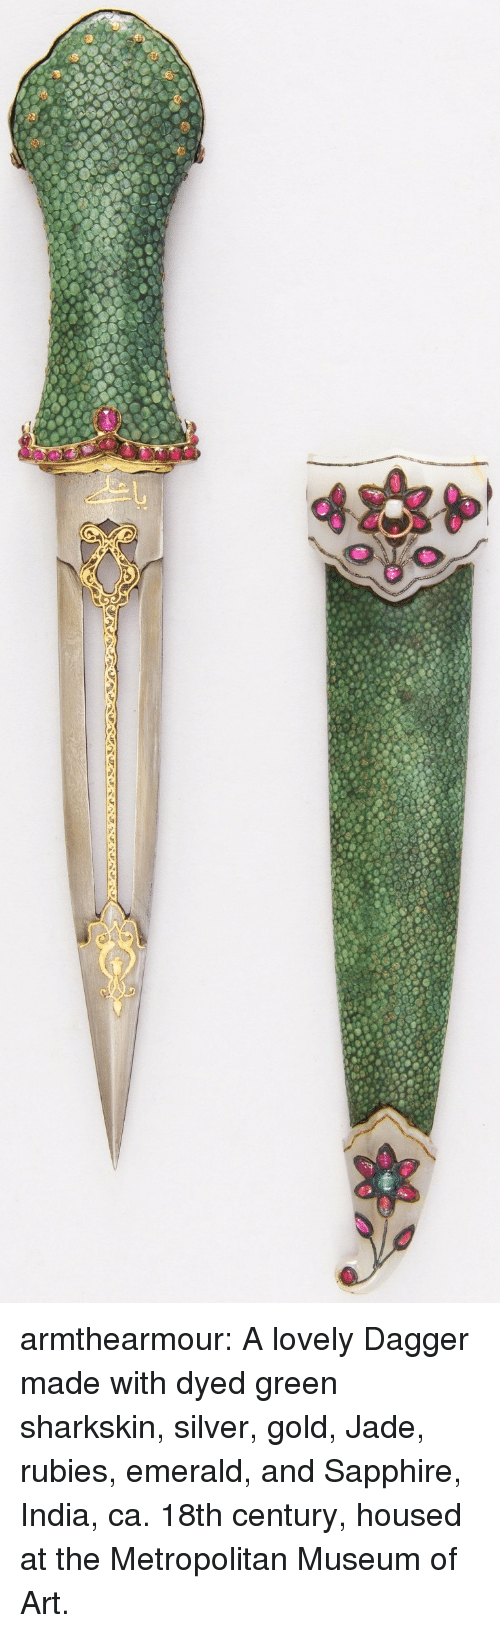 emerald: armthearmour:  A lovely Dagger made with dyed green sharkskin, silver, gold, Jade, rubies, emerald, and Sapphire, India, ca. 18th century, housed at the Metropolitan Museum of Art.